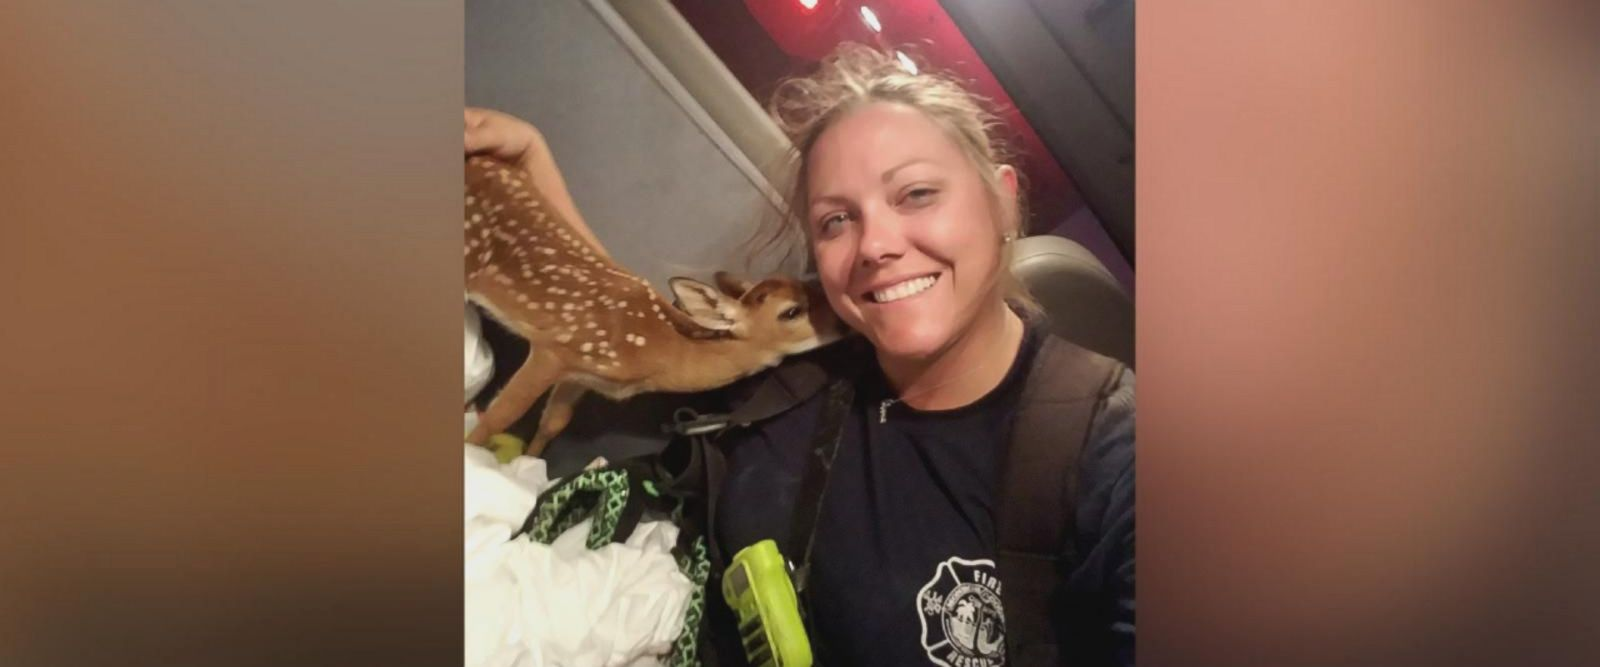 Firefighter Jen Shockley Brack rescued a young spotted fawn while responding to a brush fire in the Florida Keys.